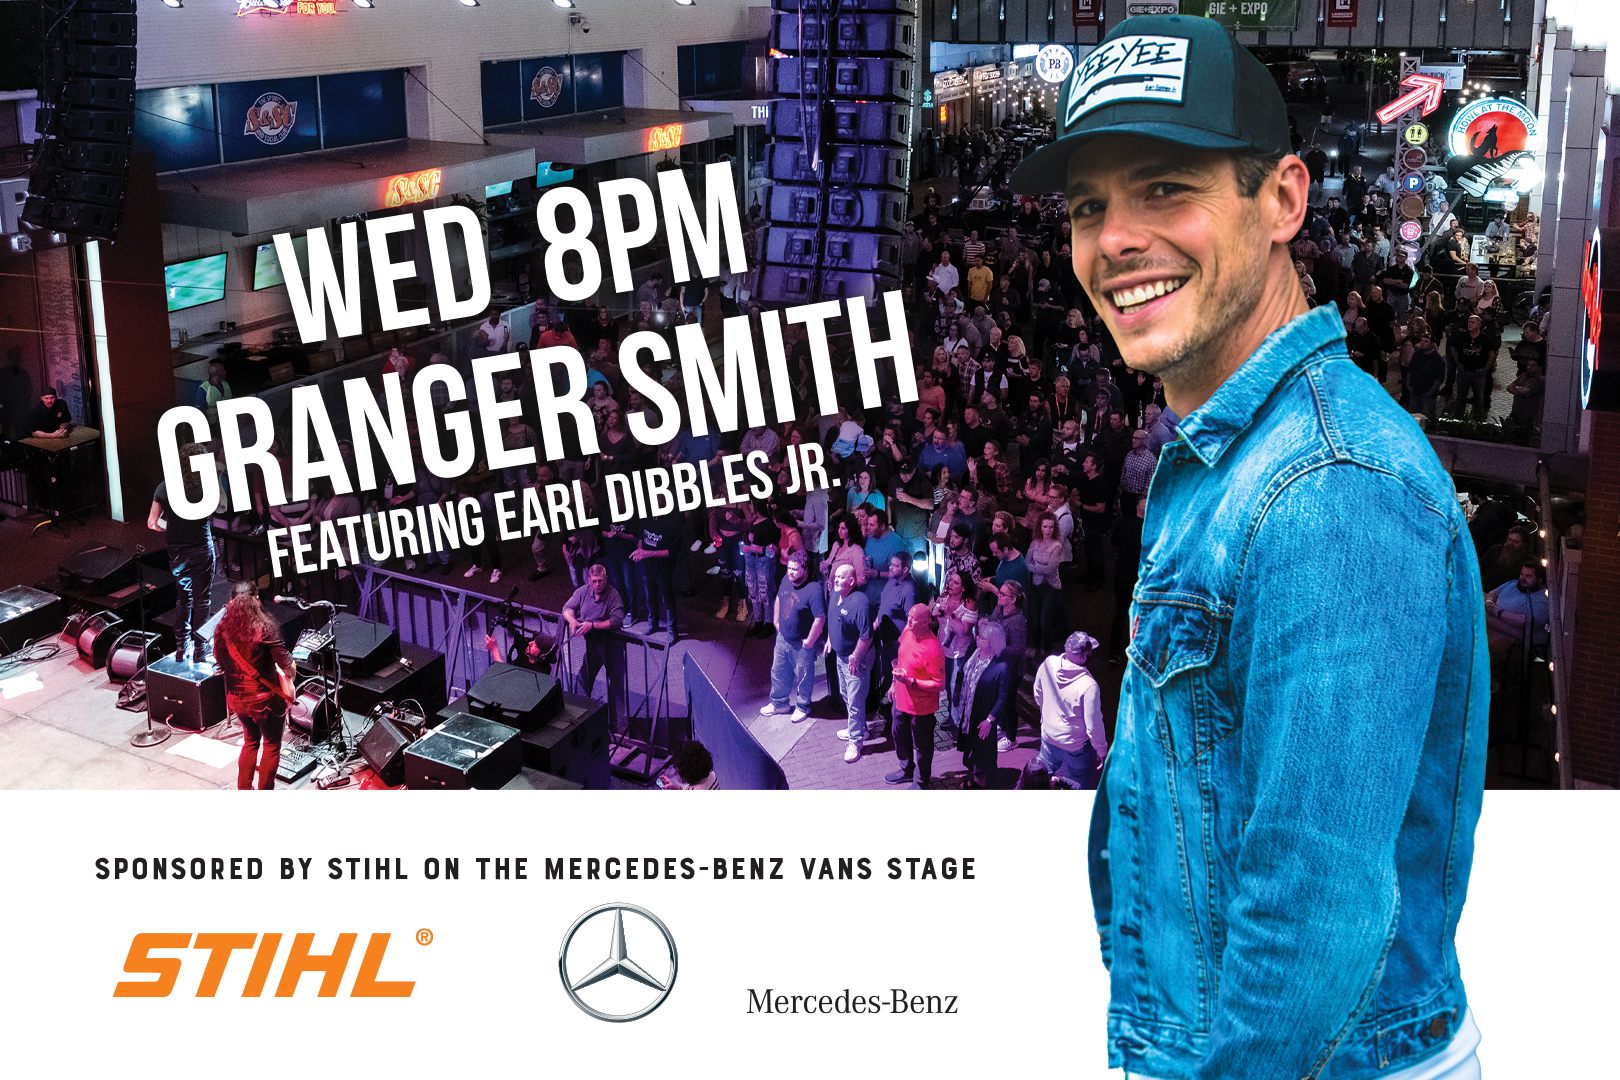 Free Concert at 4th Street Live: Granger Smith featuring Early Dibble Jr., Hardscape North America